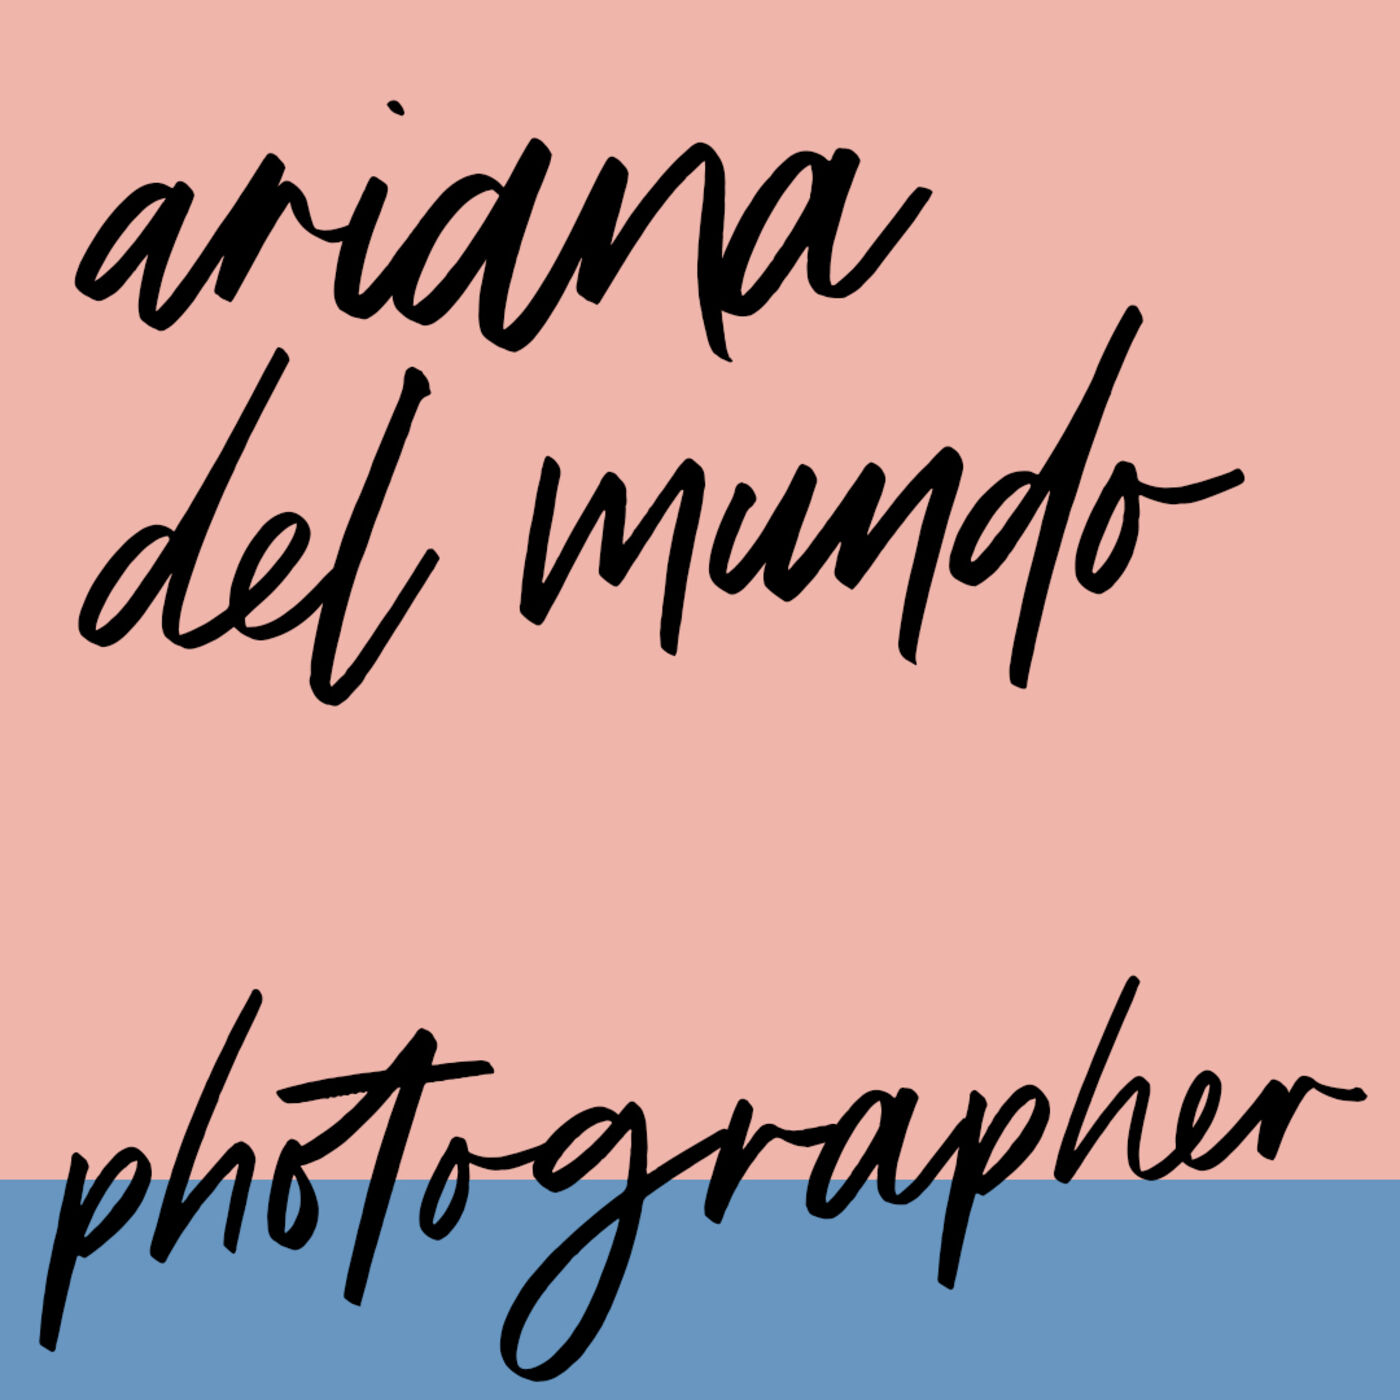 """#73: Photographer: Ariana del Mundo: """"You have these talents, you might as well use them"""""""